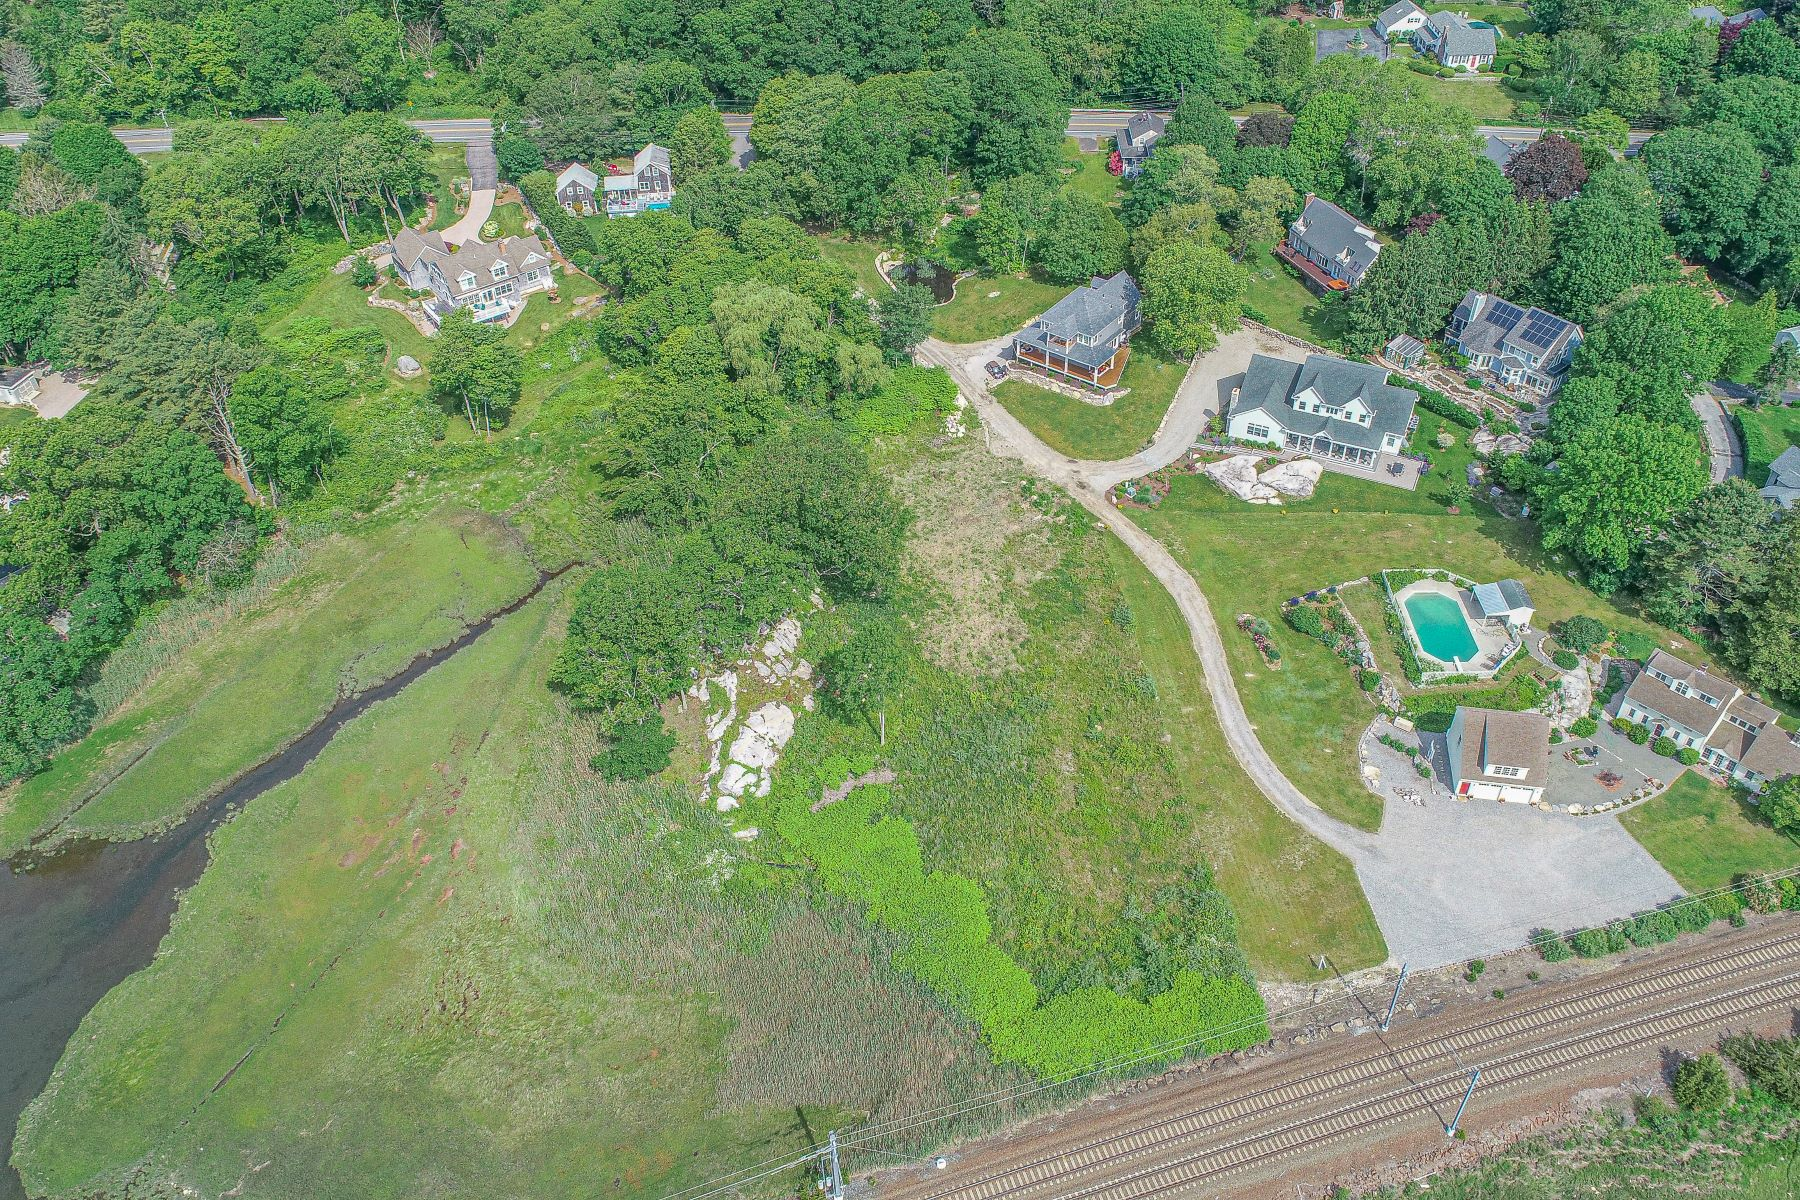 Land for Sale at 504 Noank Road Groton, Connecticut 06340 United States